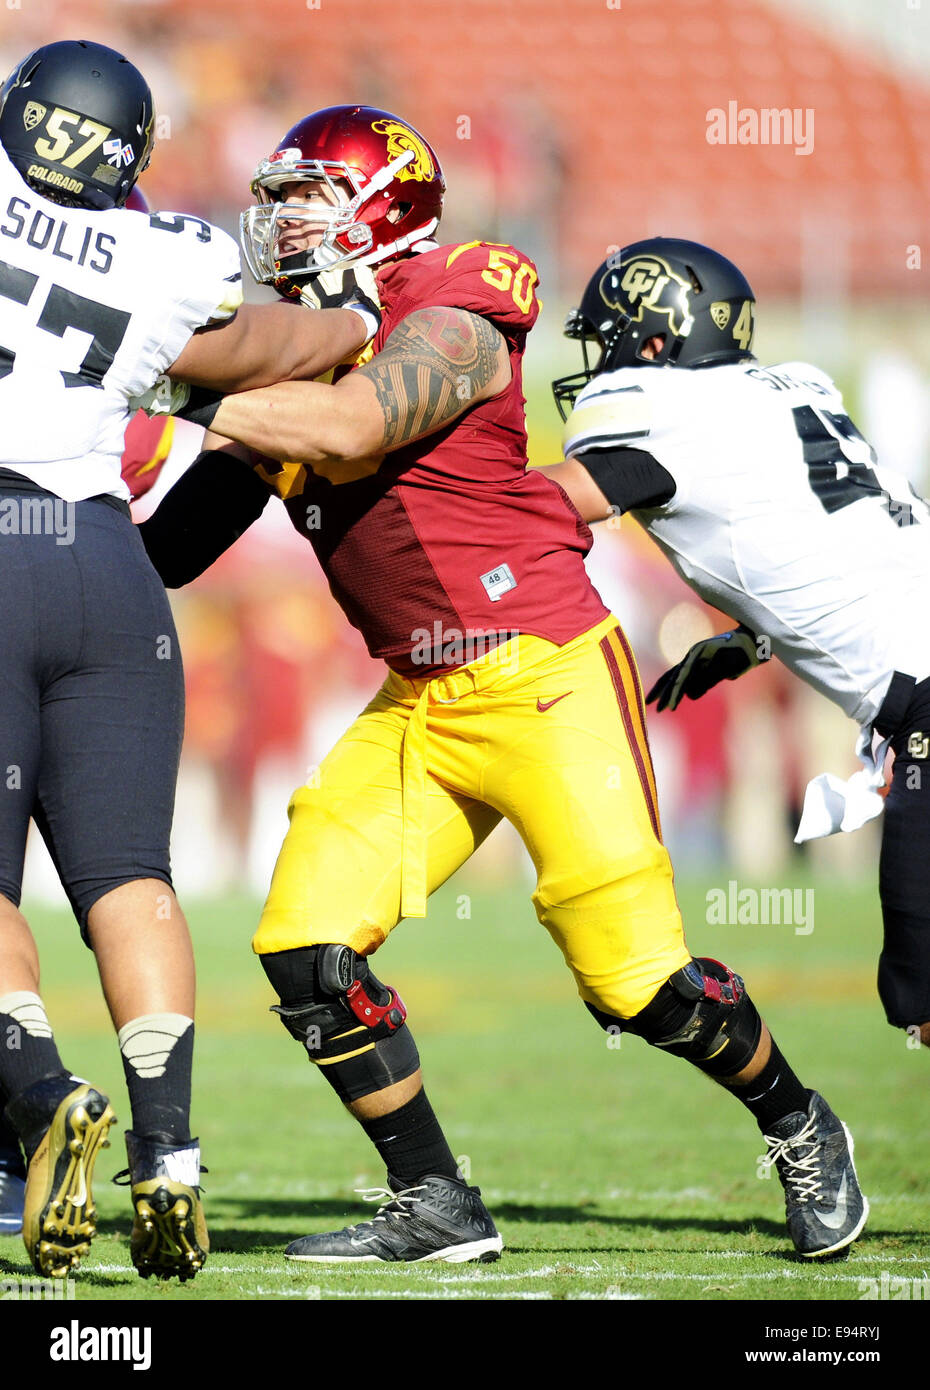 Los Angeles, USA. 18th Oct, 2014. Toa Lobendahn of the USC Trojans in action during a 56-28 victory over the Colorado - Stock Image